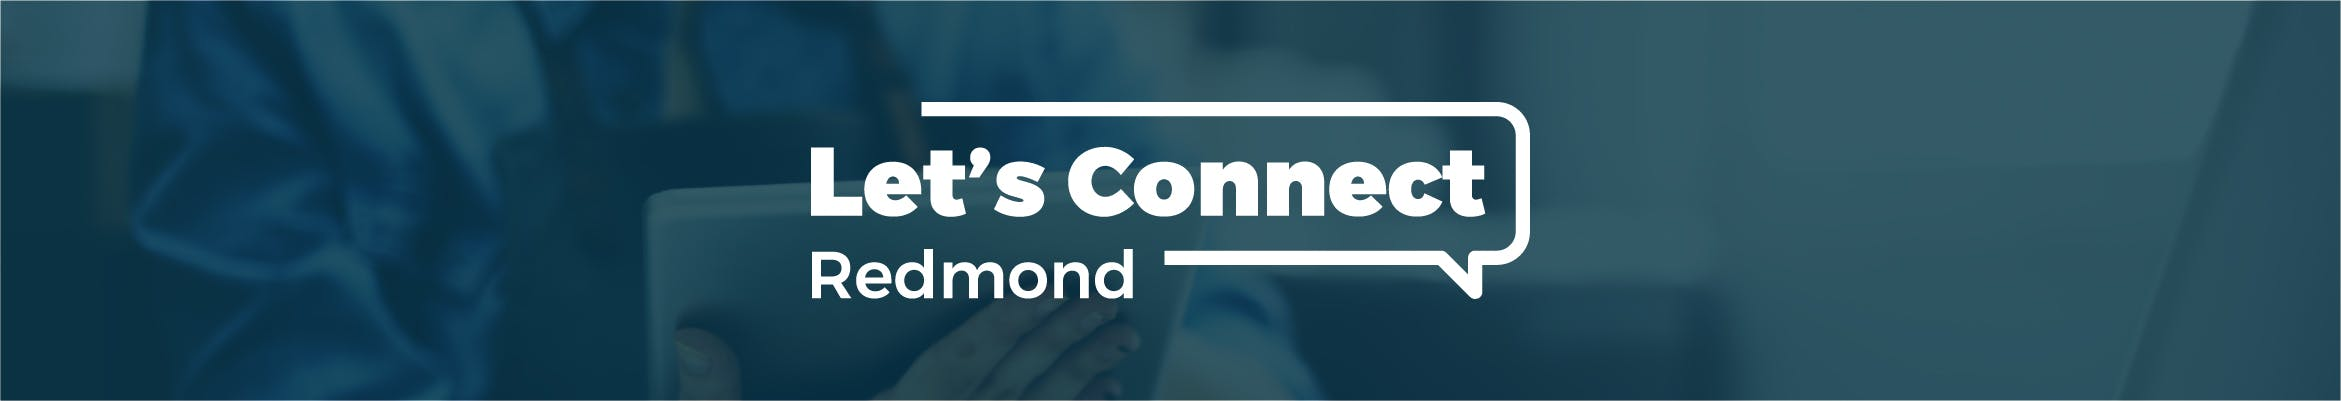 Let's Connect Redmond